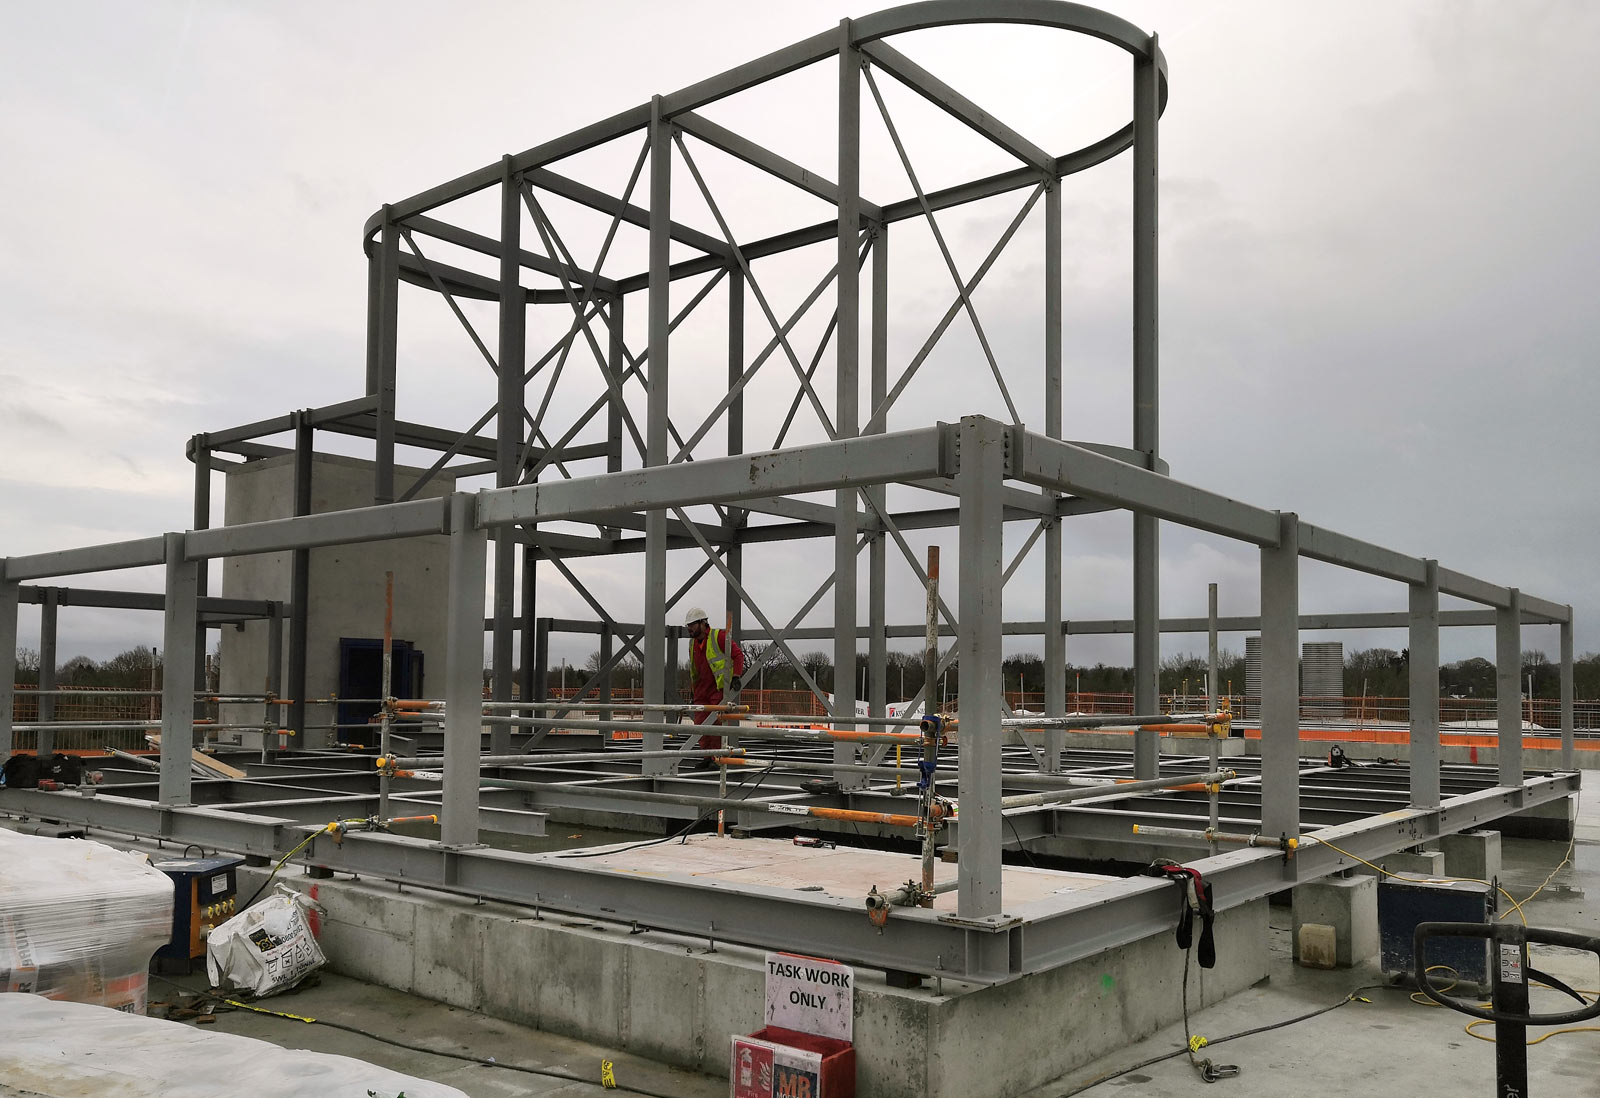 Cancer Research Centre - Phase 2 In progress